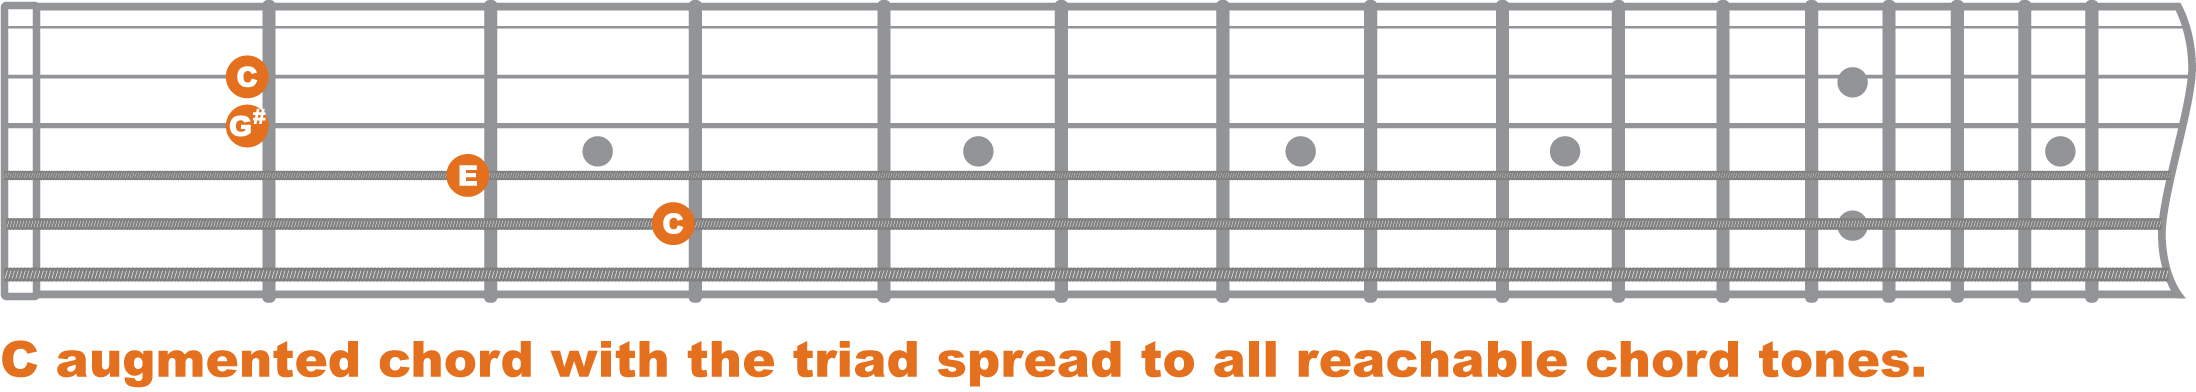 Chord Theory Augmented Chords Baltimore Guitar Lessons